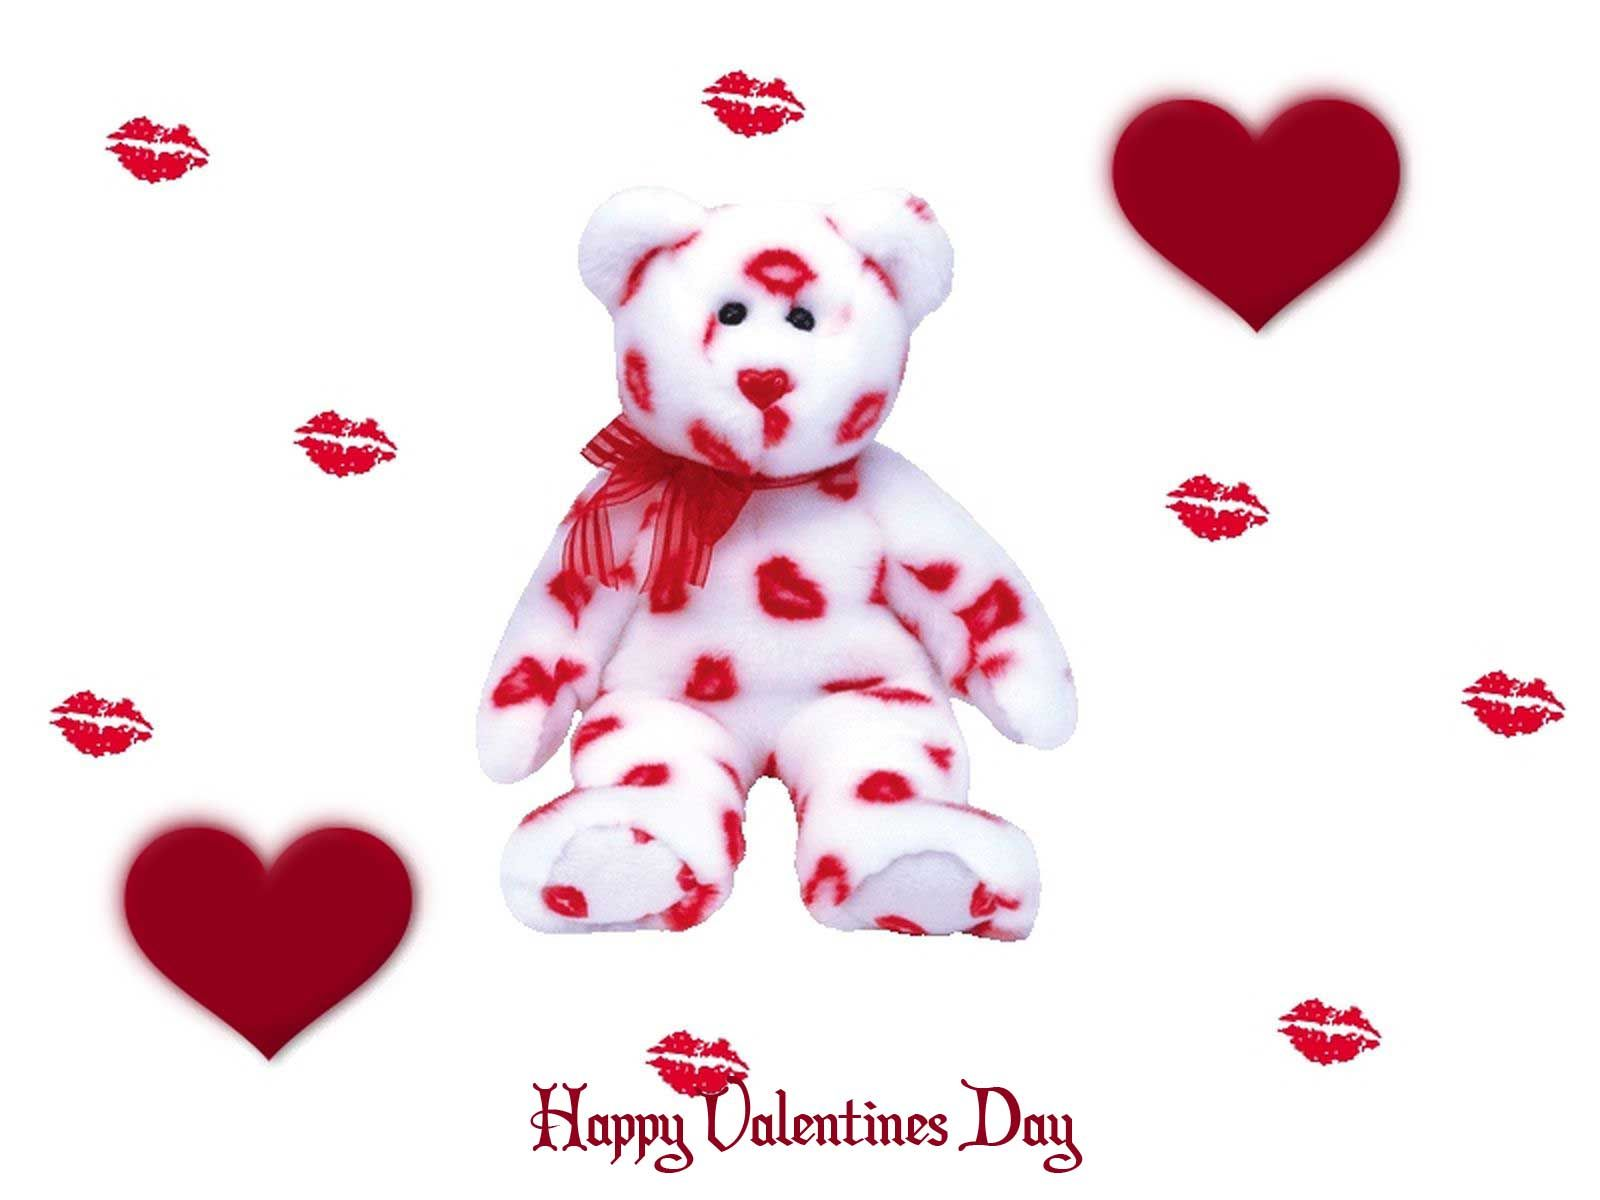 A lot of kisses on valentines day inspirequotesneta – Teddy Bear Valentines Day Card